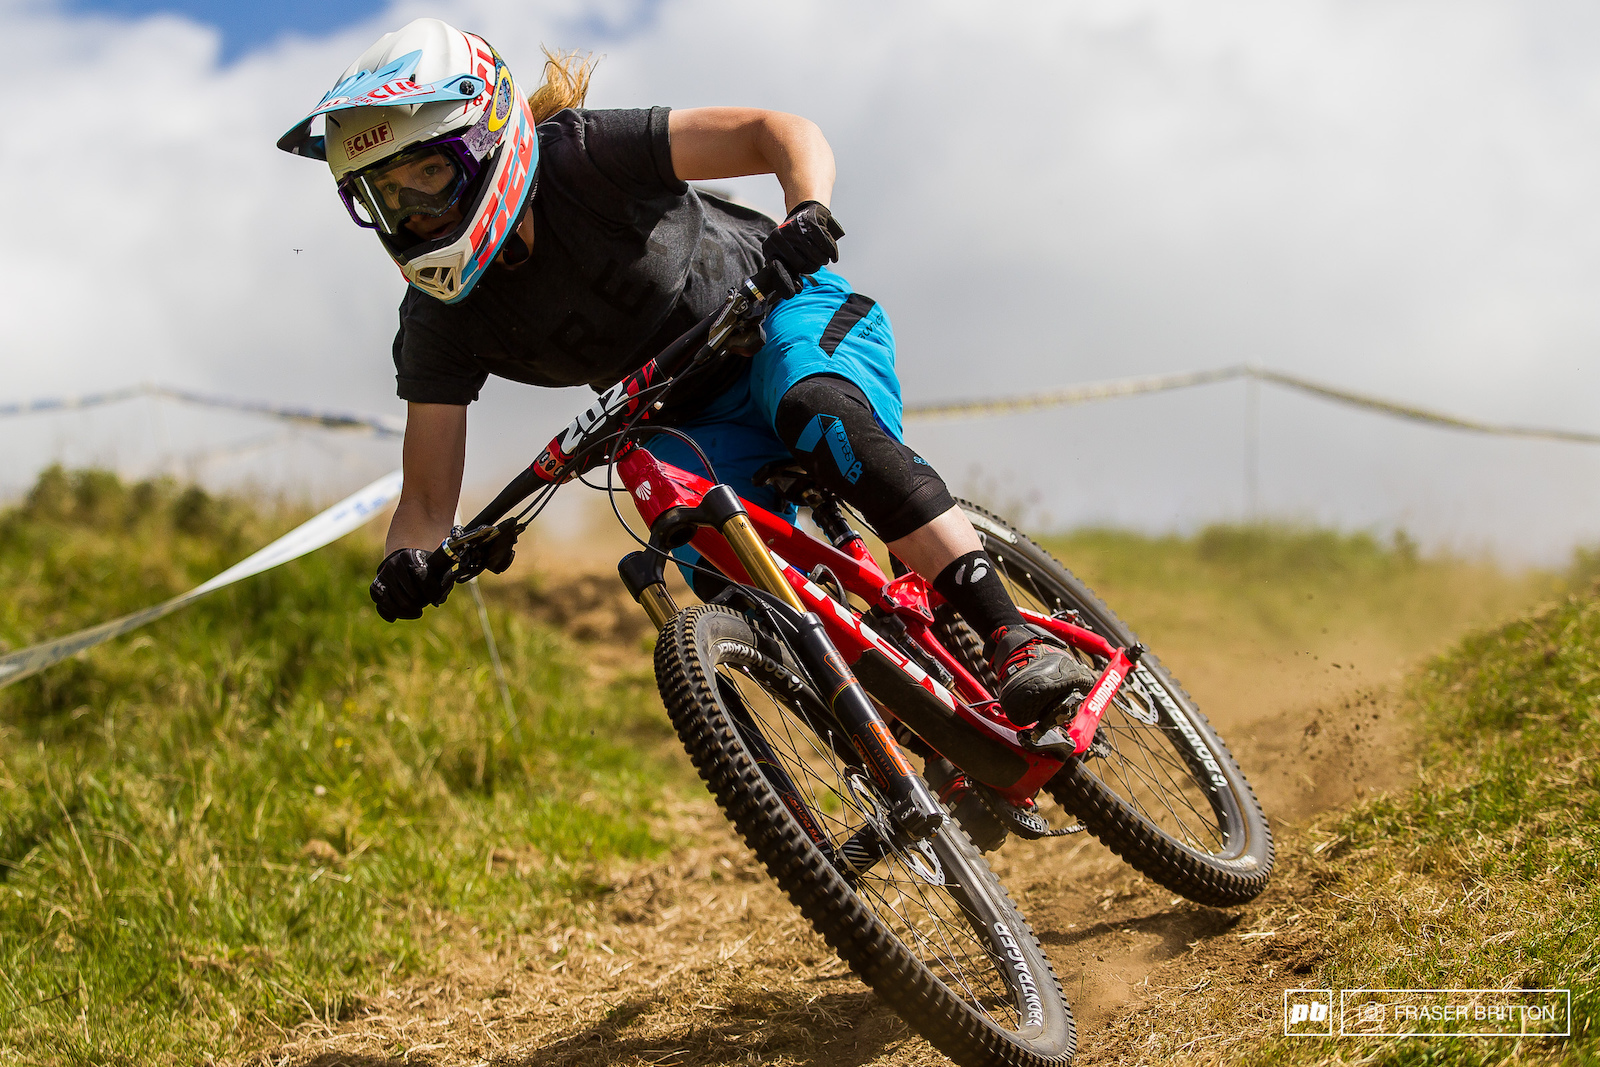 Casey Brown is the toughest chick on the downhill circuit bar none. She cased the pond jump in practice and took her downhill bike out of commission. She decided to sack up and race the downhill on her little bike to a 3rd place finish.